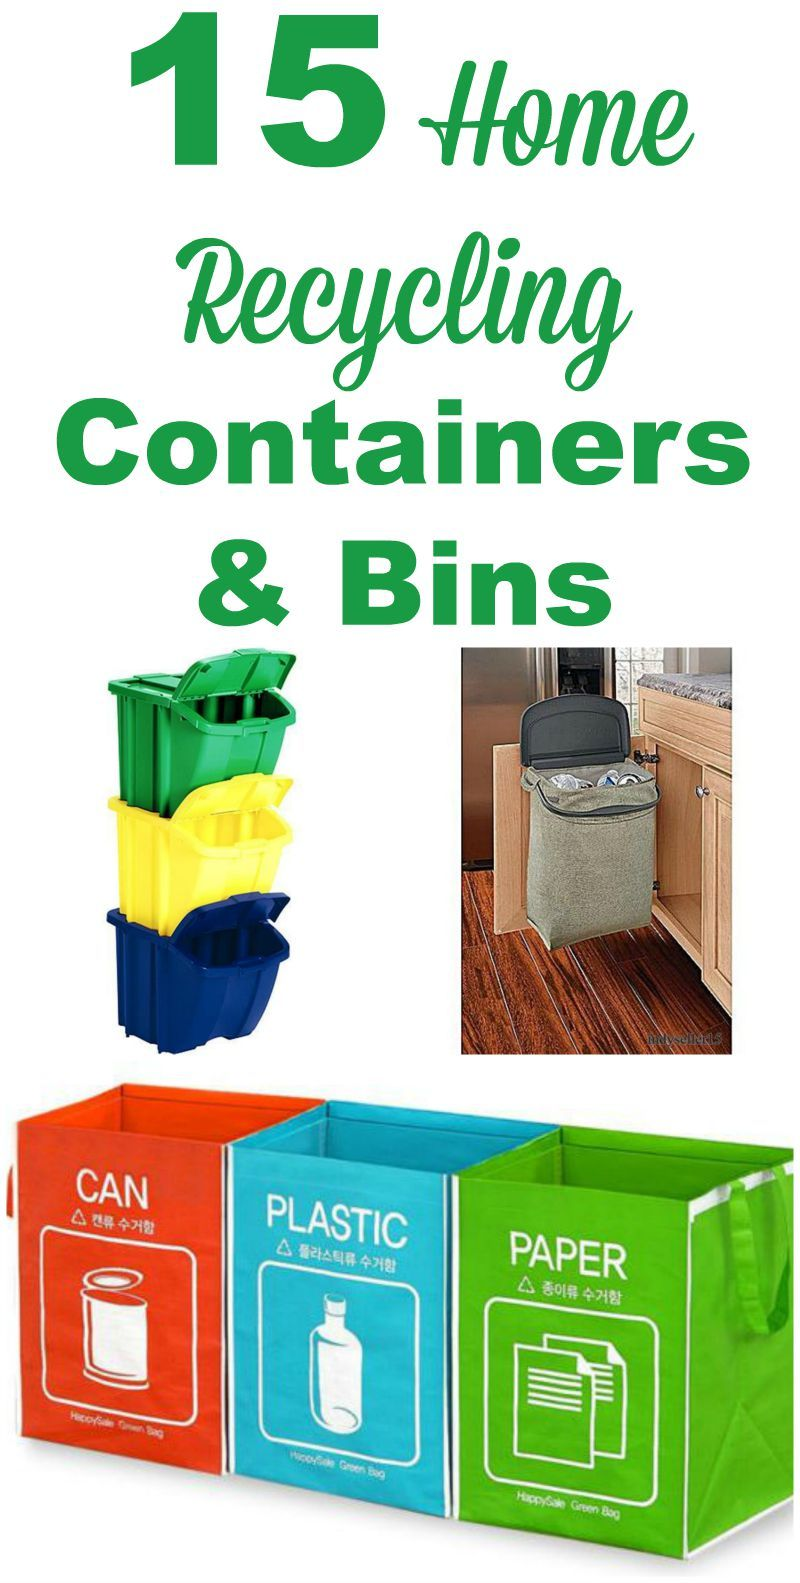 15 Home Recycling Containers And Bins You Can Use To Make More Convenient Attractive Also Includes Ideas For Compost Ad